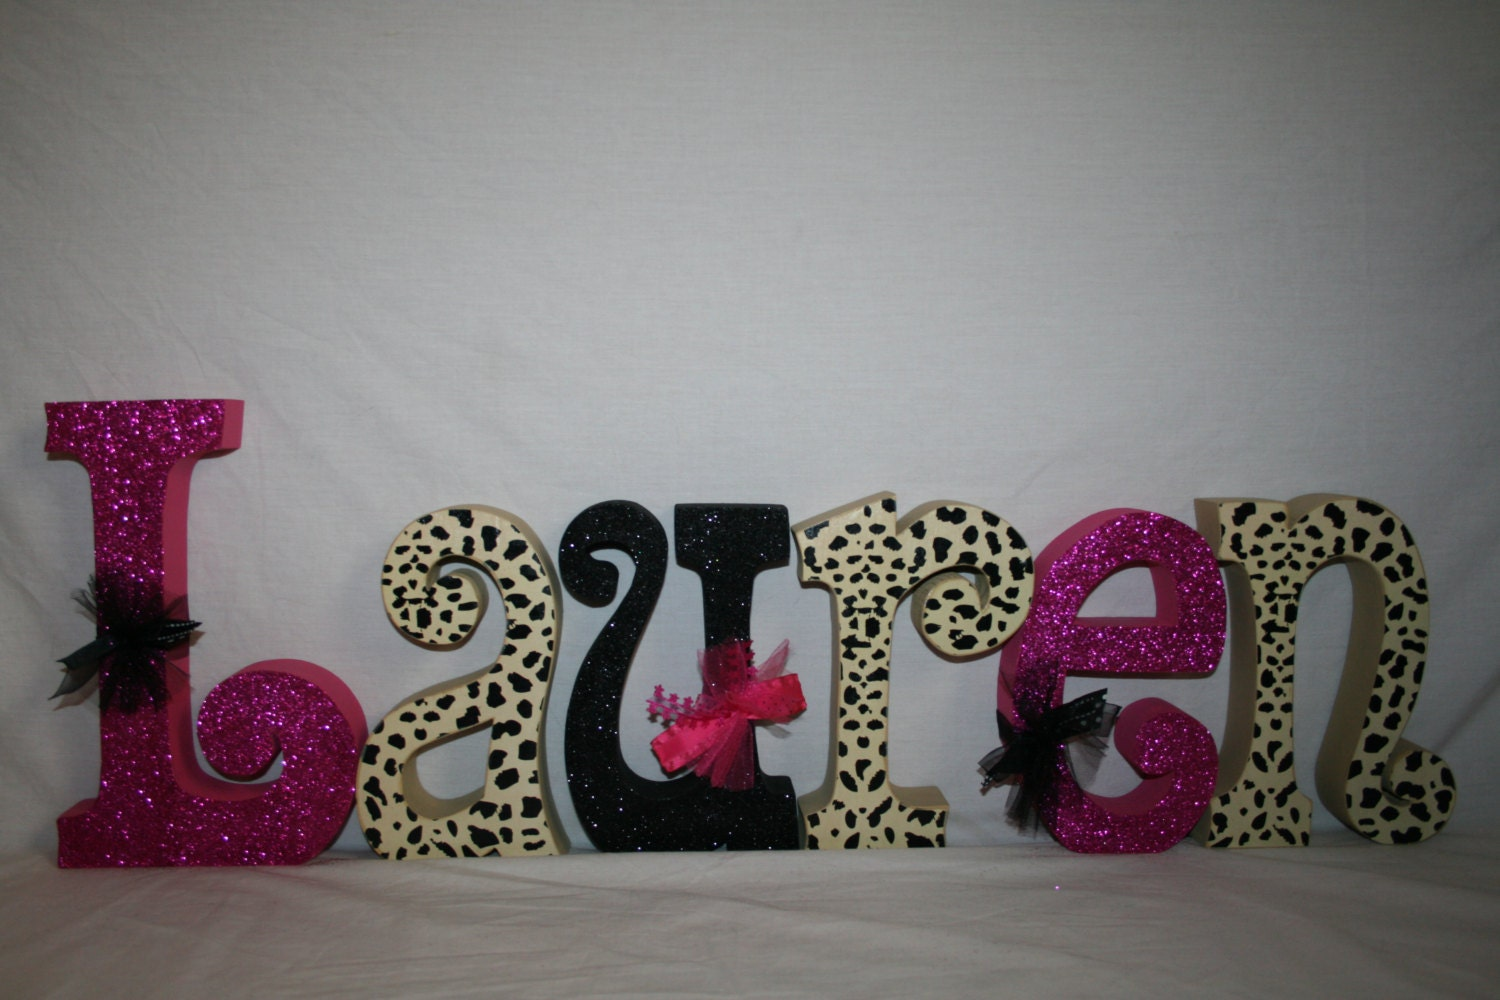 Leopard Print Bedroom Accessories Cheetah Decor High Quality Home Design